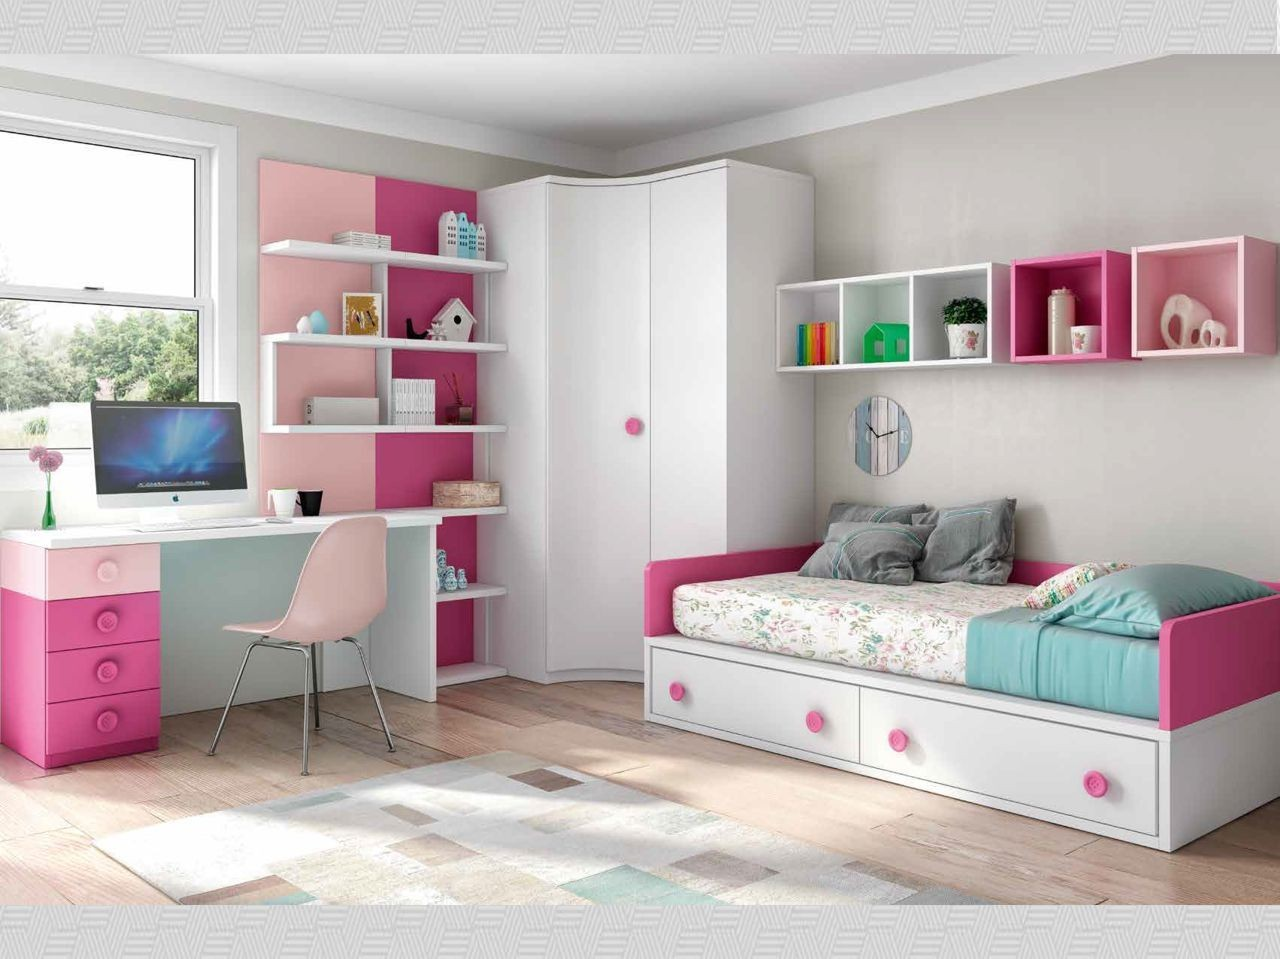 habitaci n juvenil blanco fucsia y rosa con tirador. Black Bedroom Furniture Sets. Home Design Ideas